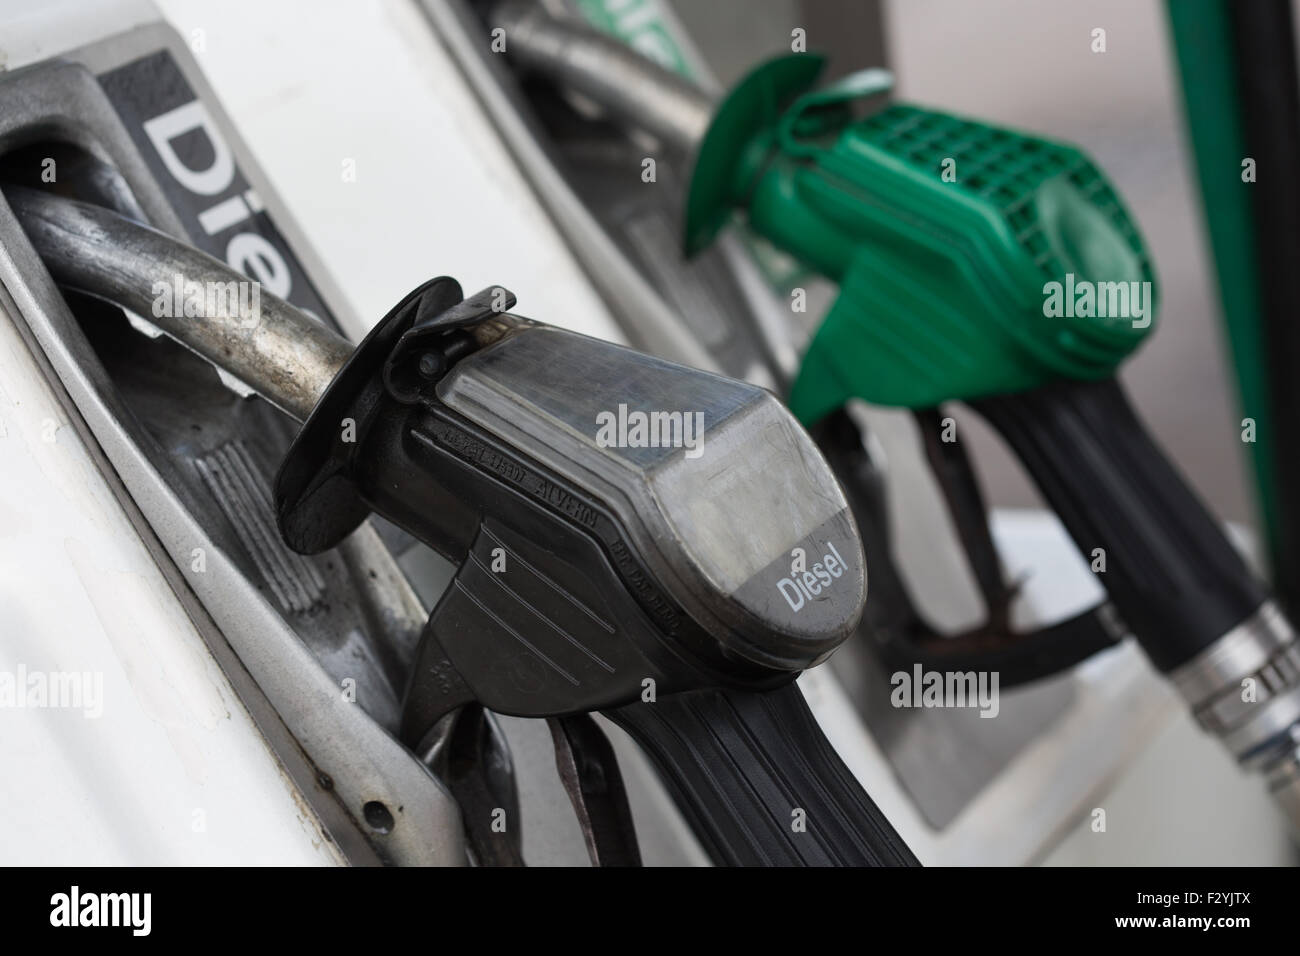 close up shot of fuel nozzle at filling station - Stock Image